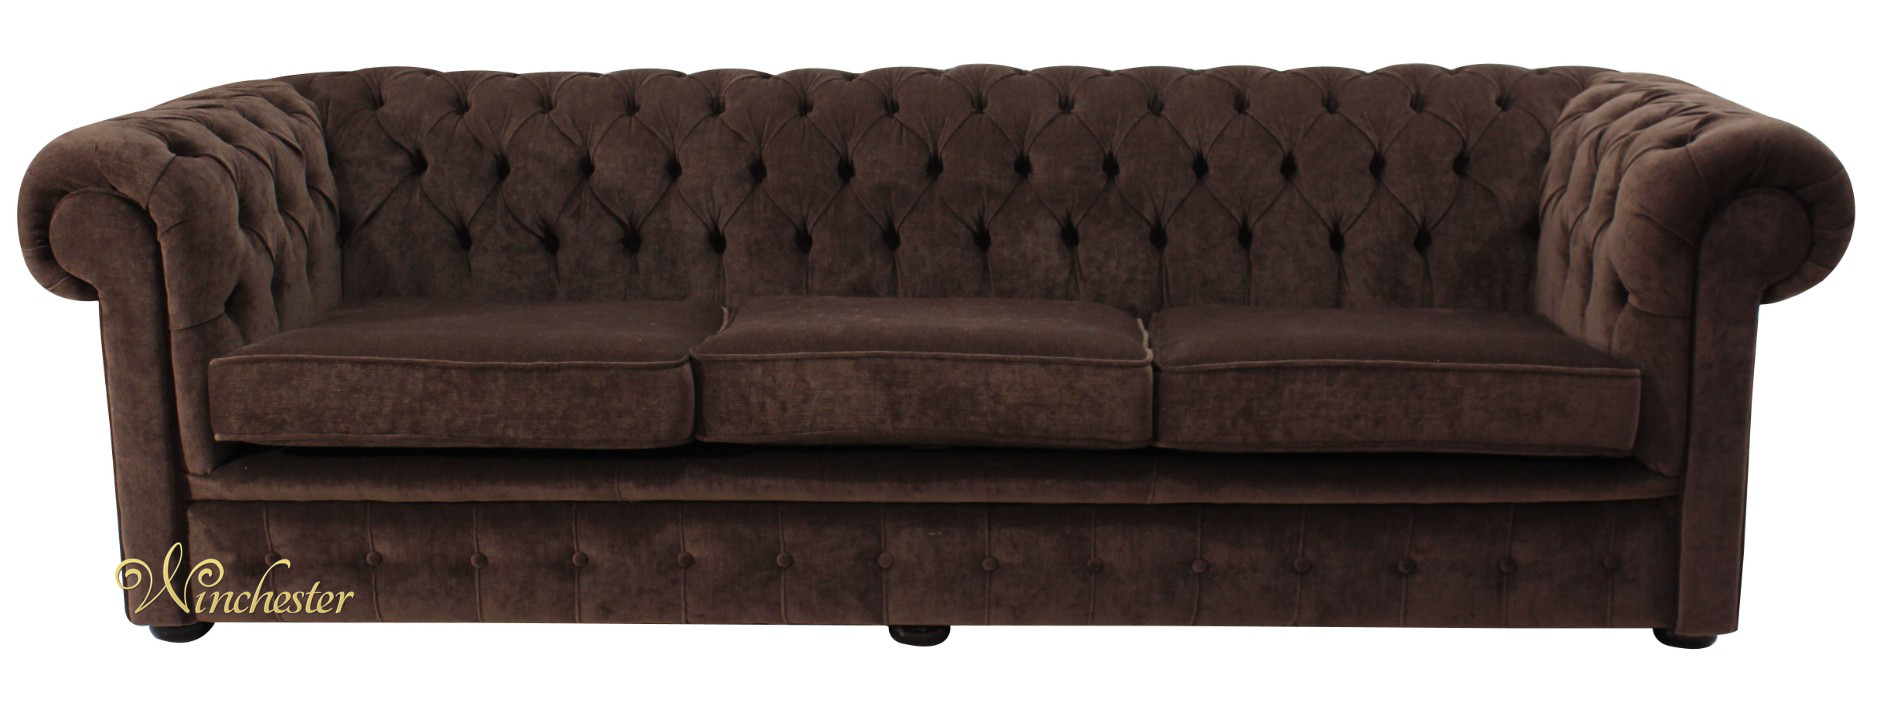 Chesterfield 4 Seater Settee Pimlico Chocolate Brown Fabric Sofa Offer